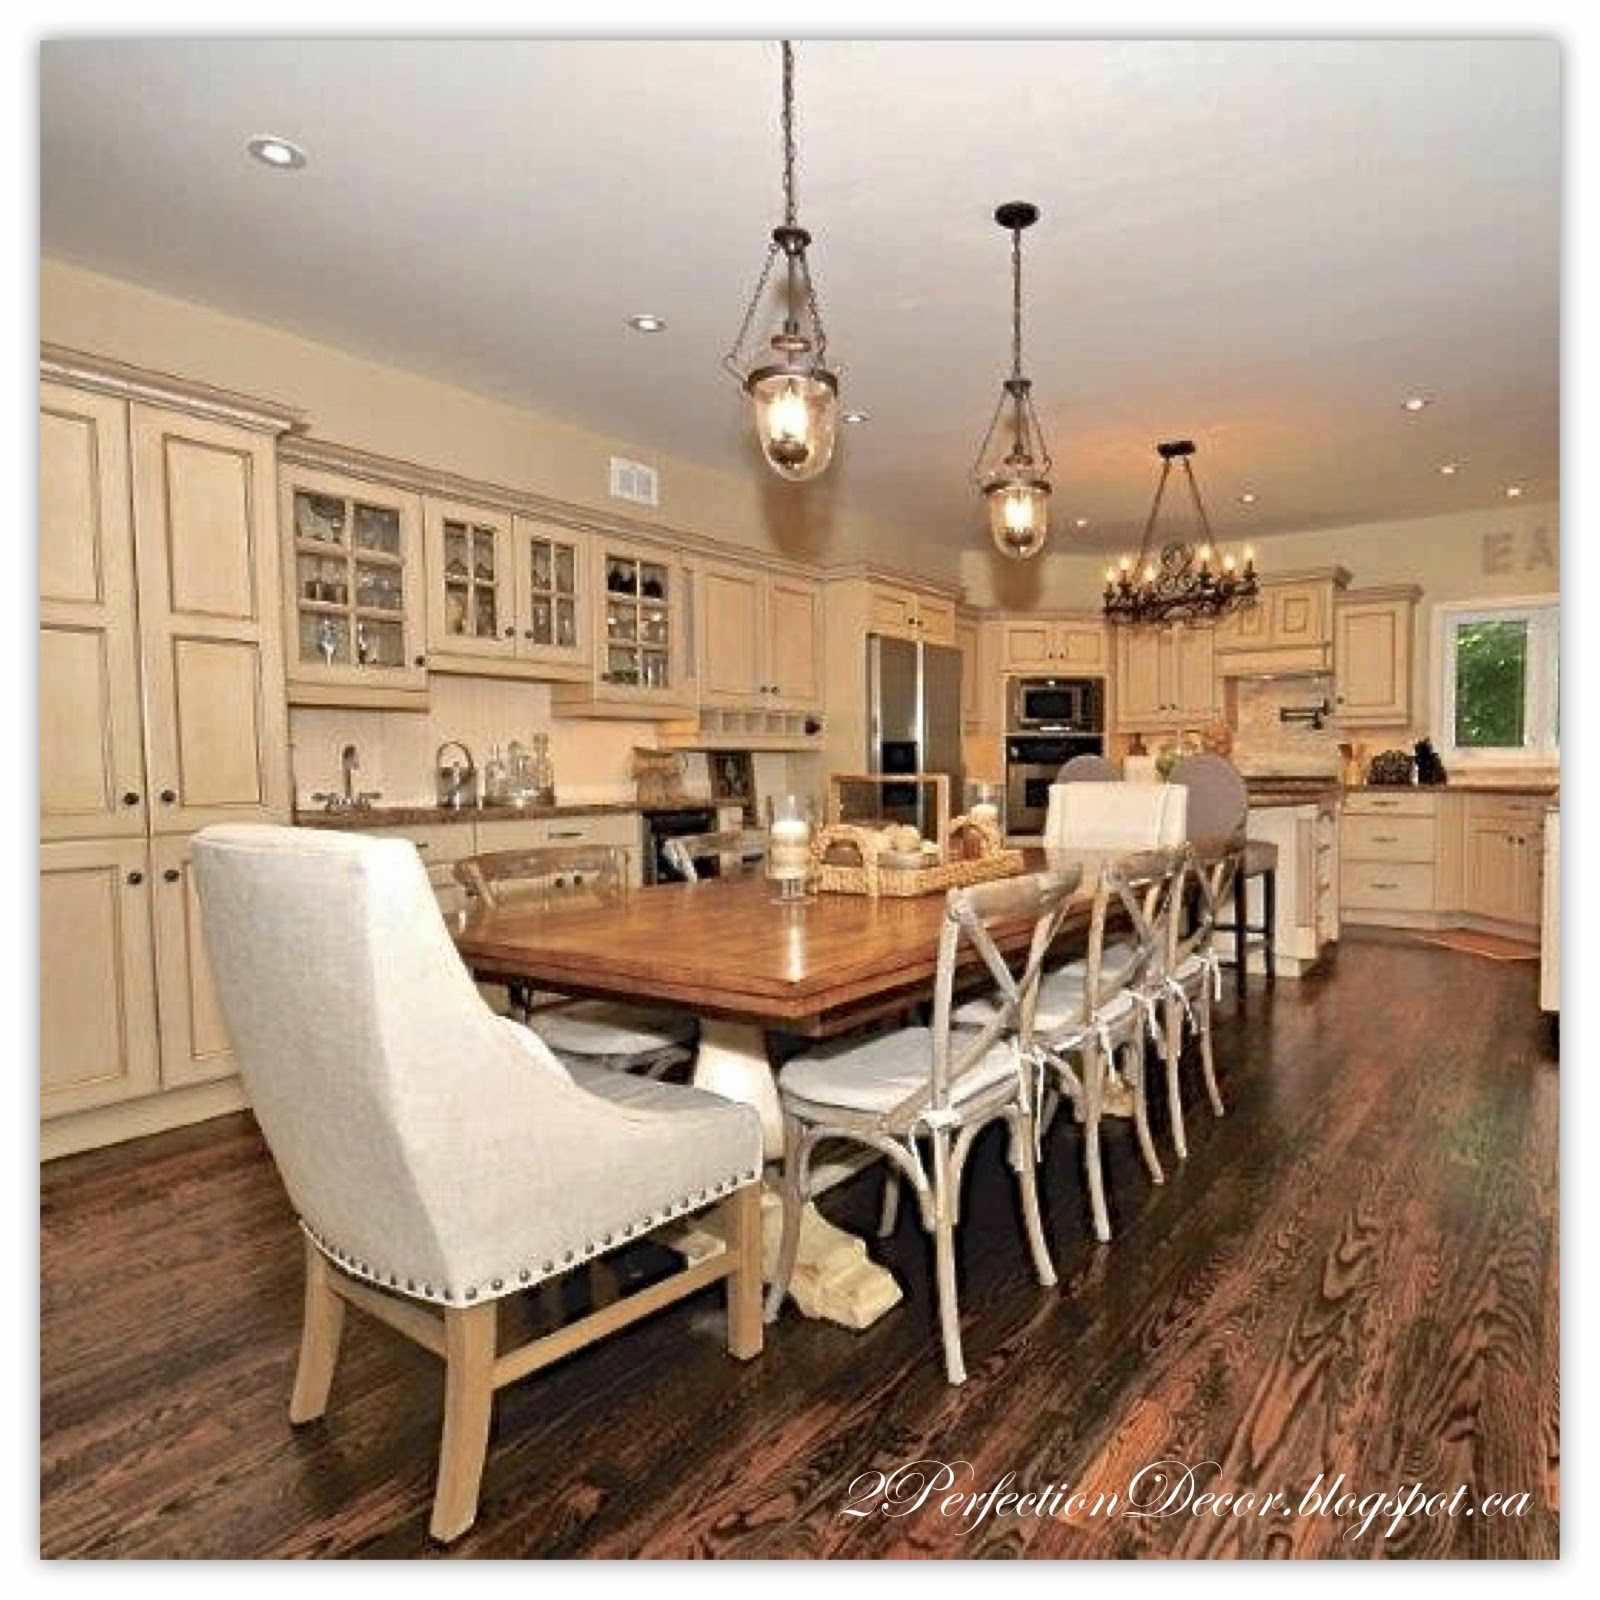 Restoration Hardware Kitchen Table Black Apron Front Sink 2perfection Decor French Country Reveal